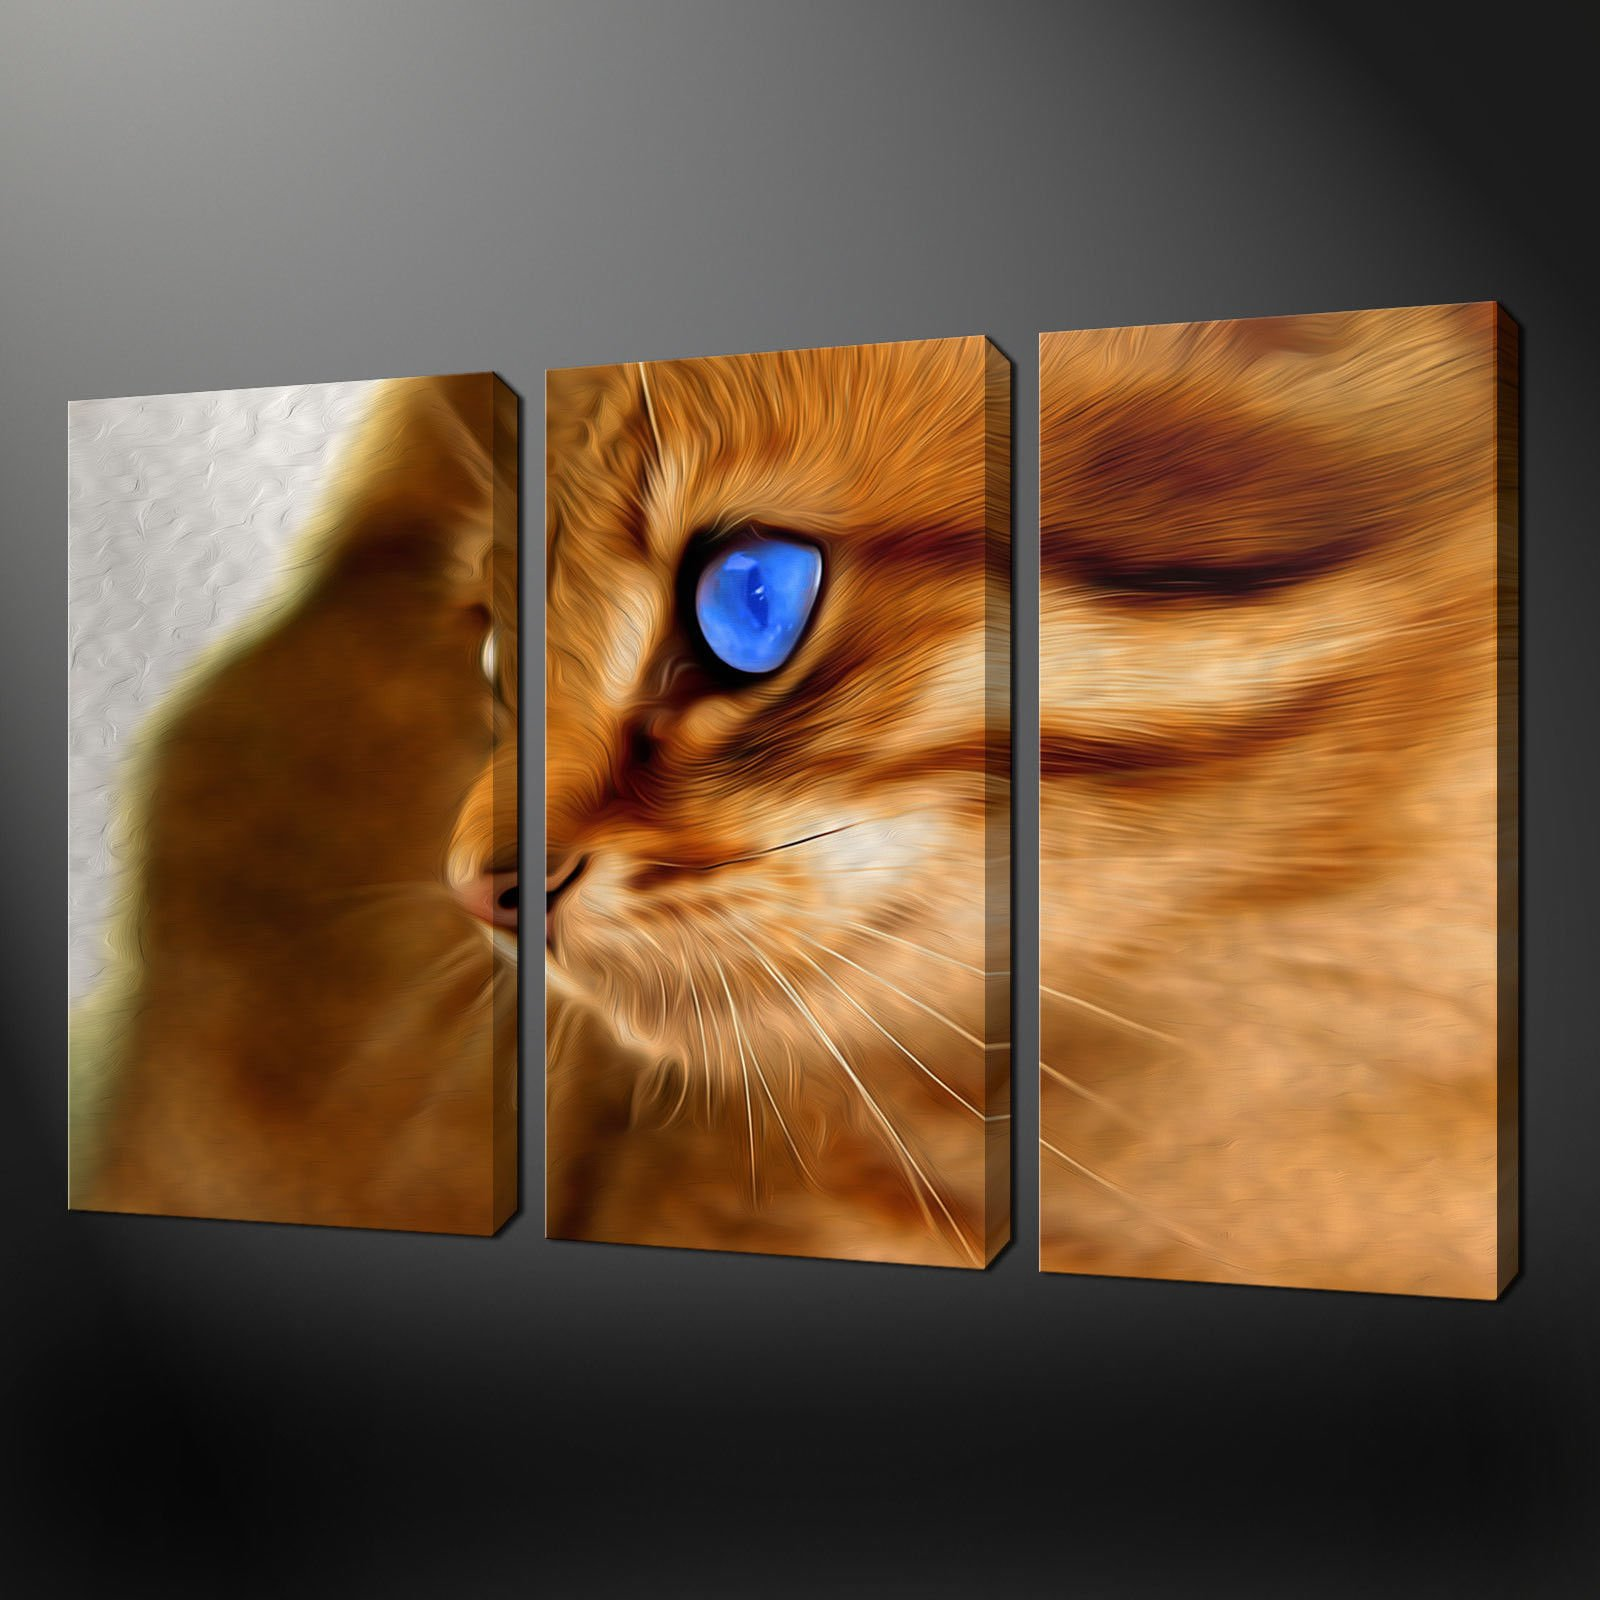 Ginger cat painting style canvas wall art pictures prints for Cat paintings on canvas